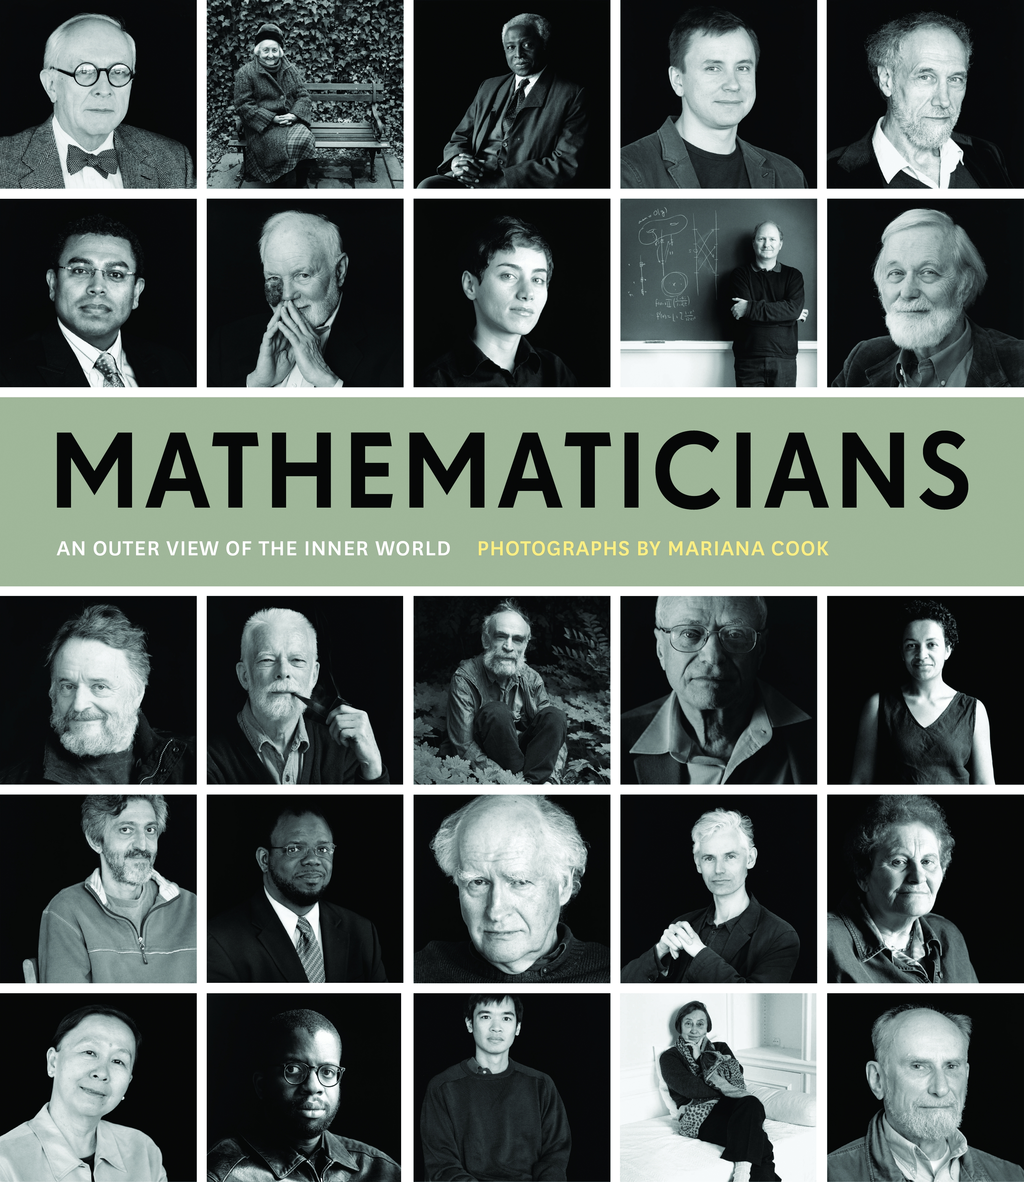 Mathematicians An Outer View of the Inner World